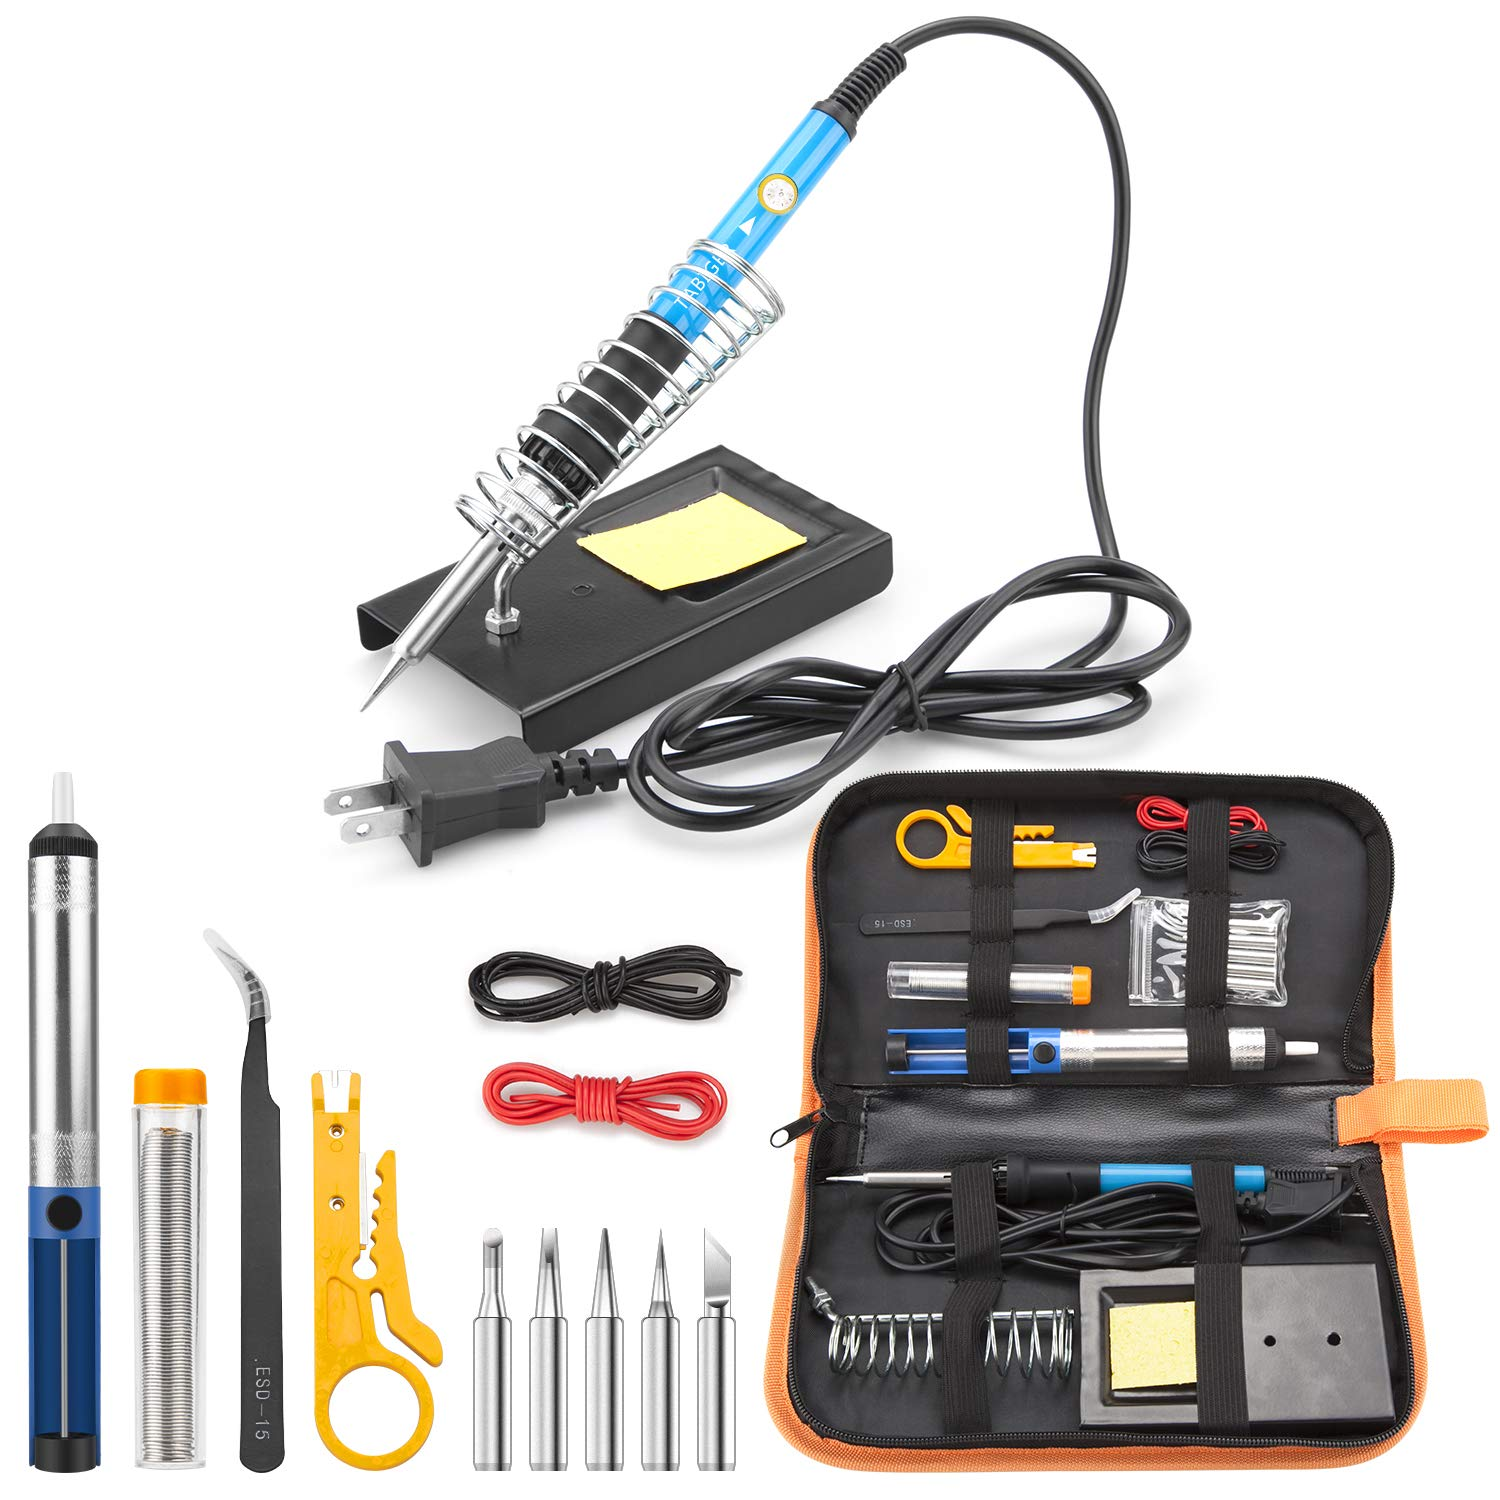 Tabiger Soldering Iron Kit 15-in-1, 60W Soldering Iron with Adjustable Temperature, Soldering Gun, 5pcs Soldering Iron Tips, Solder Wire, Desoldering Pump, Tweezer, Soldering Stand, Tool Case by Tabiger